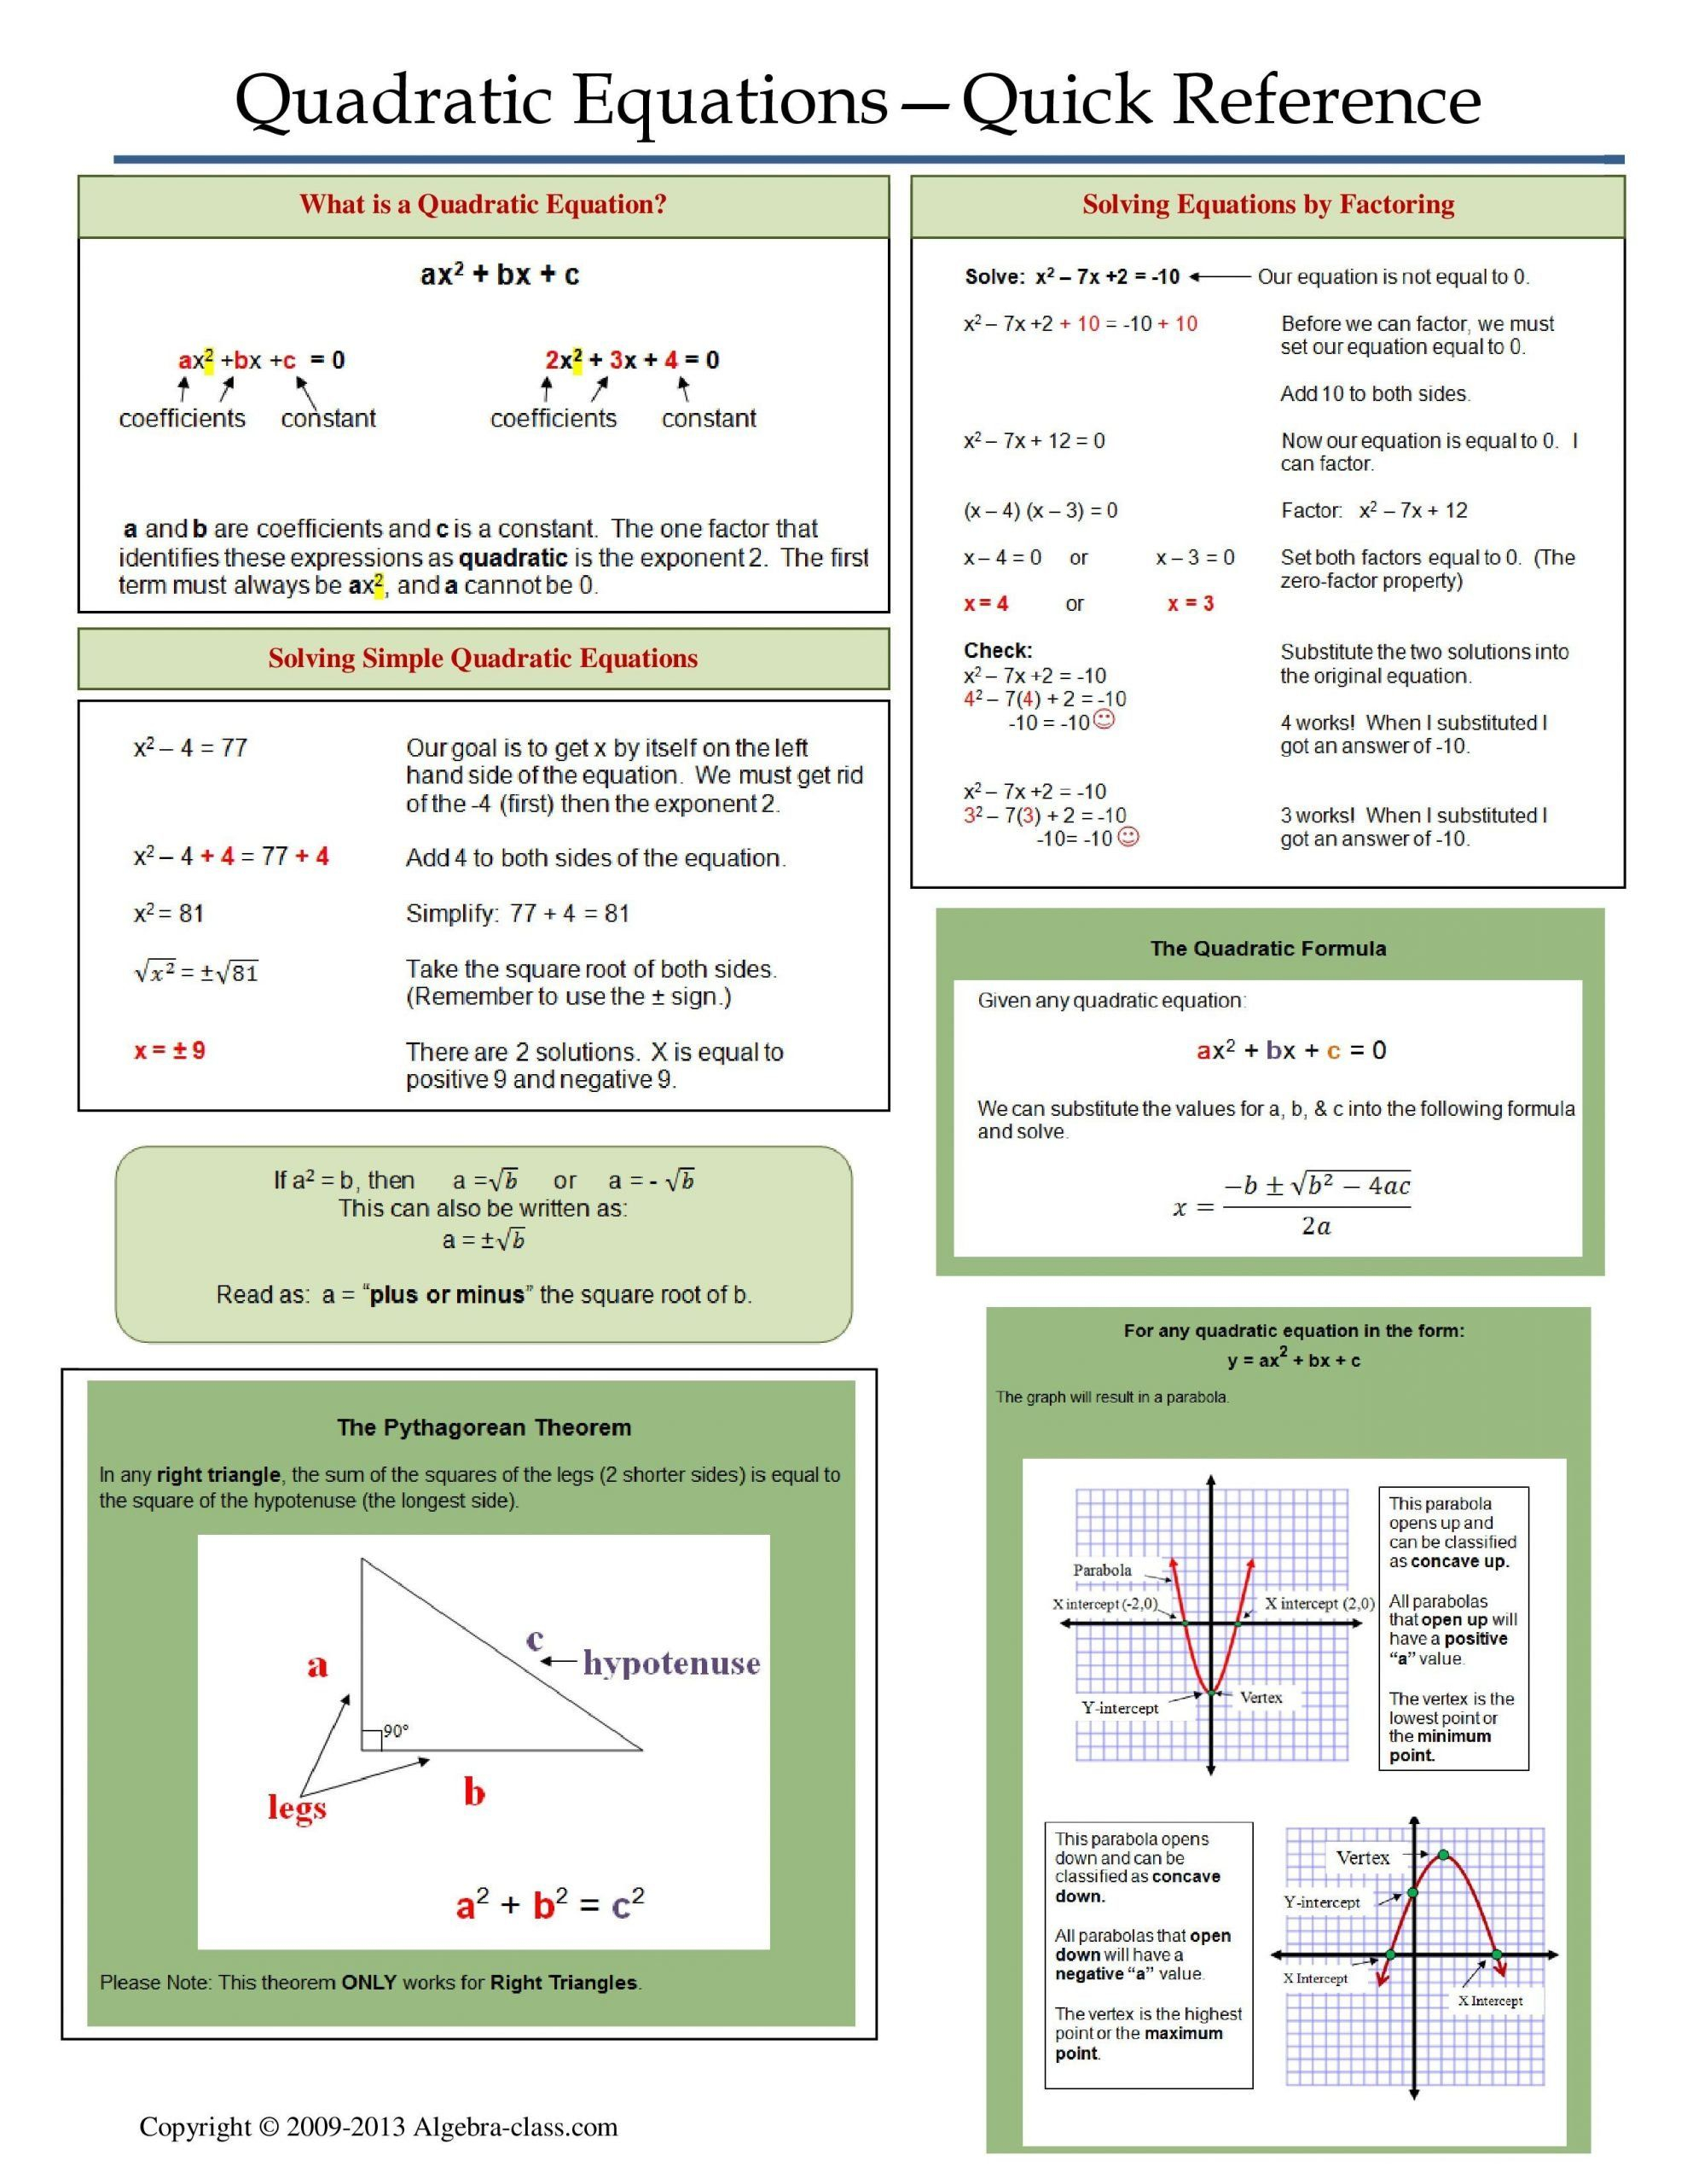 Quadratic Functions Worksheet With Answers E Page Notes